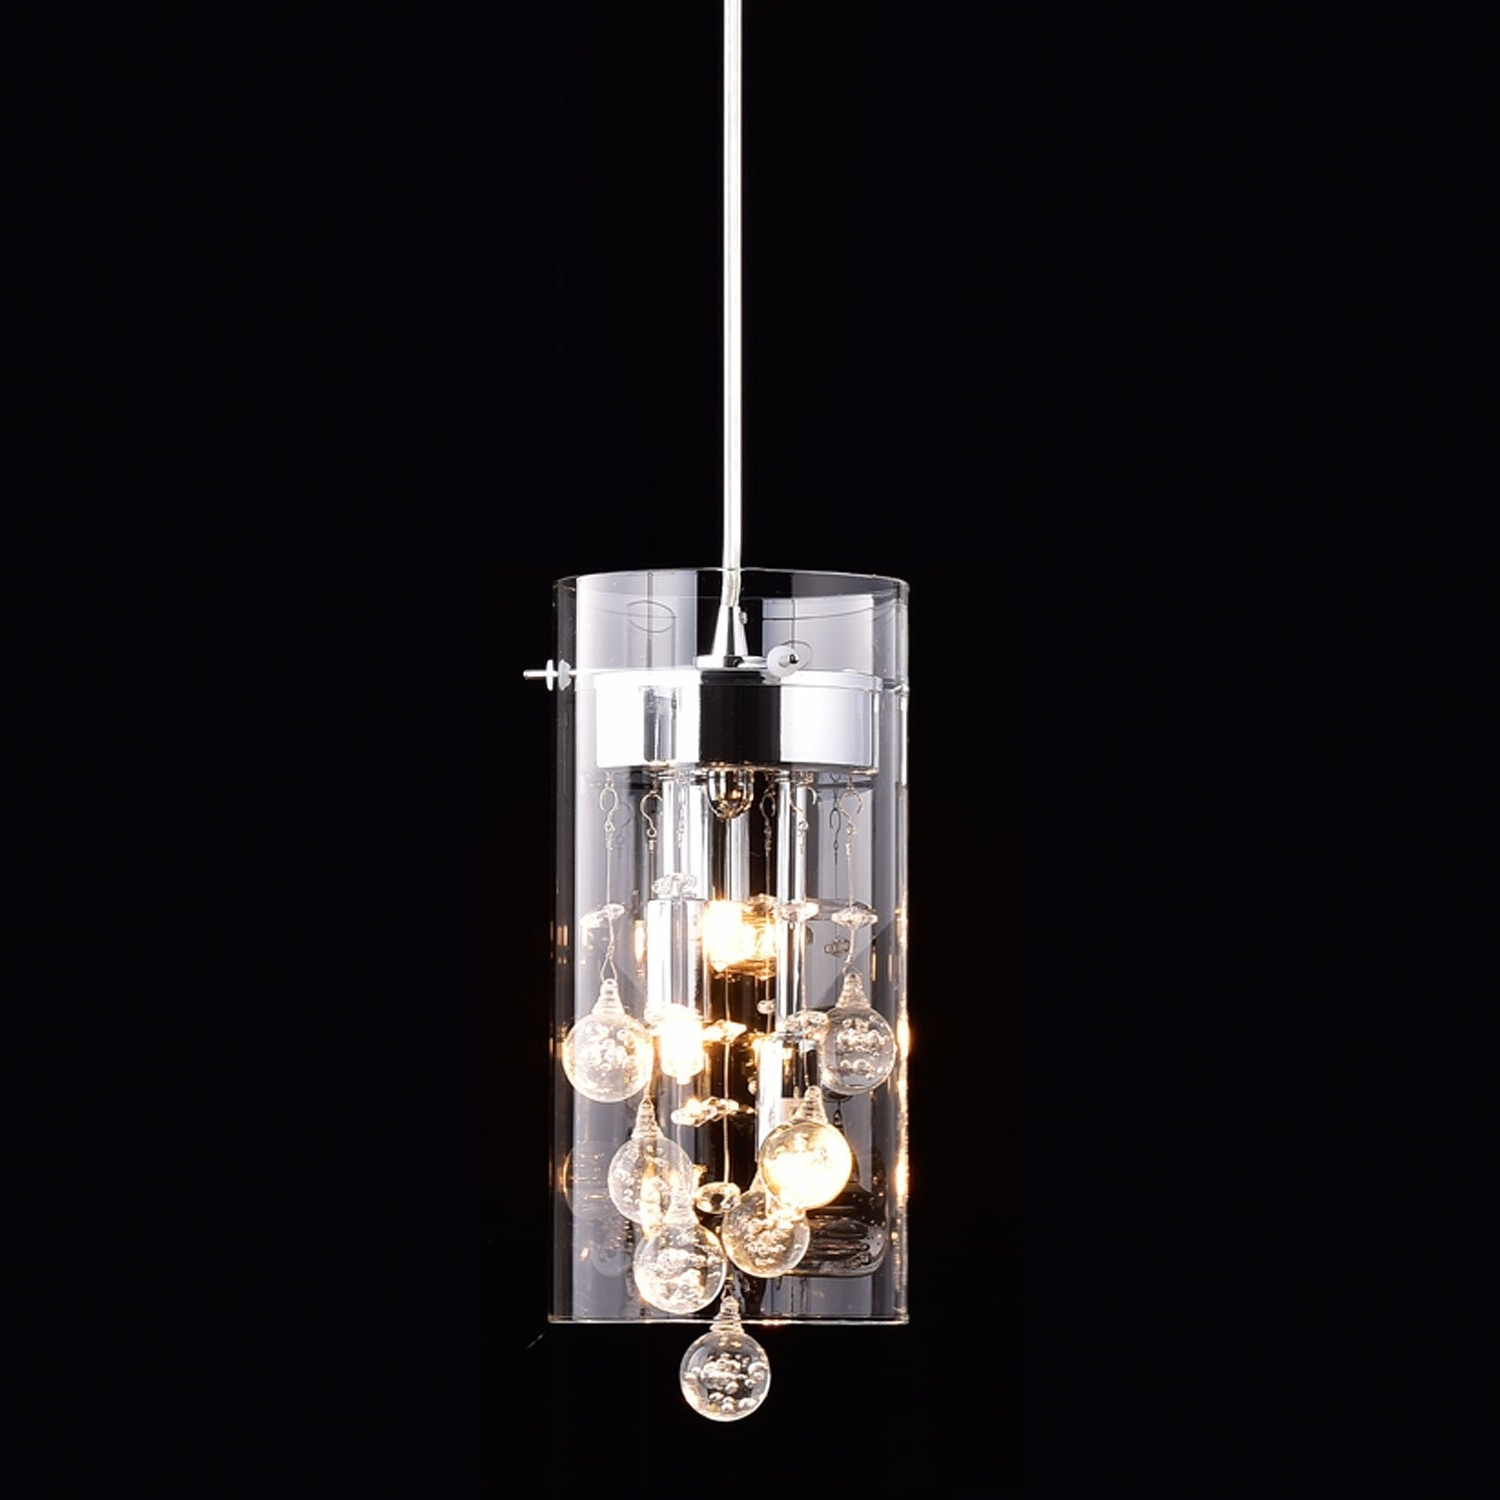 Modern Chandelier Lighting With Regard To Well Known Claxy Ecopower Lighting Glass & Crystal Pendant Lighting Modern (View 10 of 15)